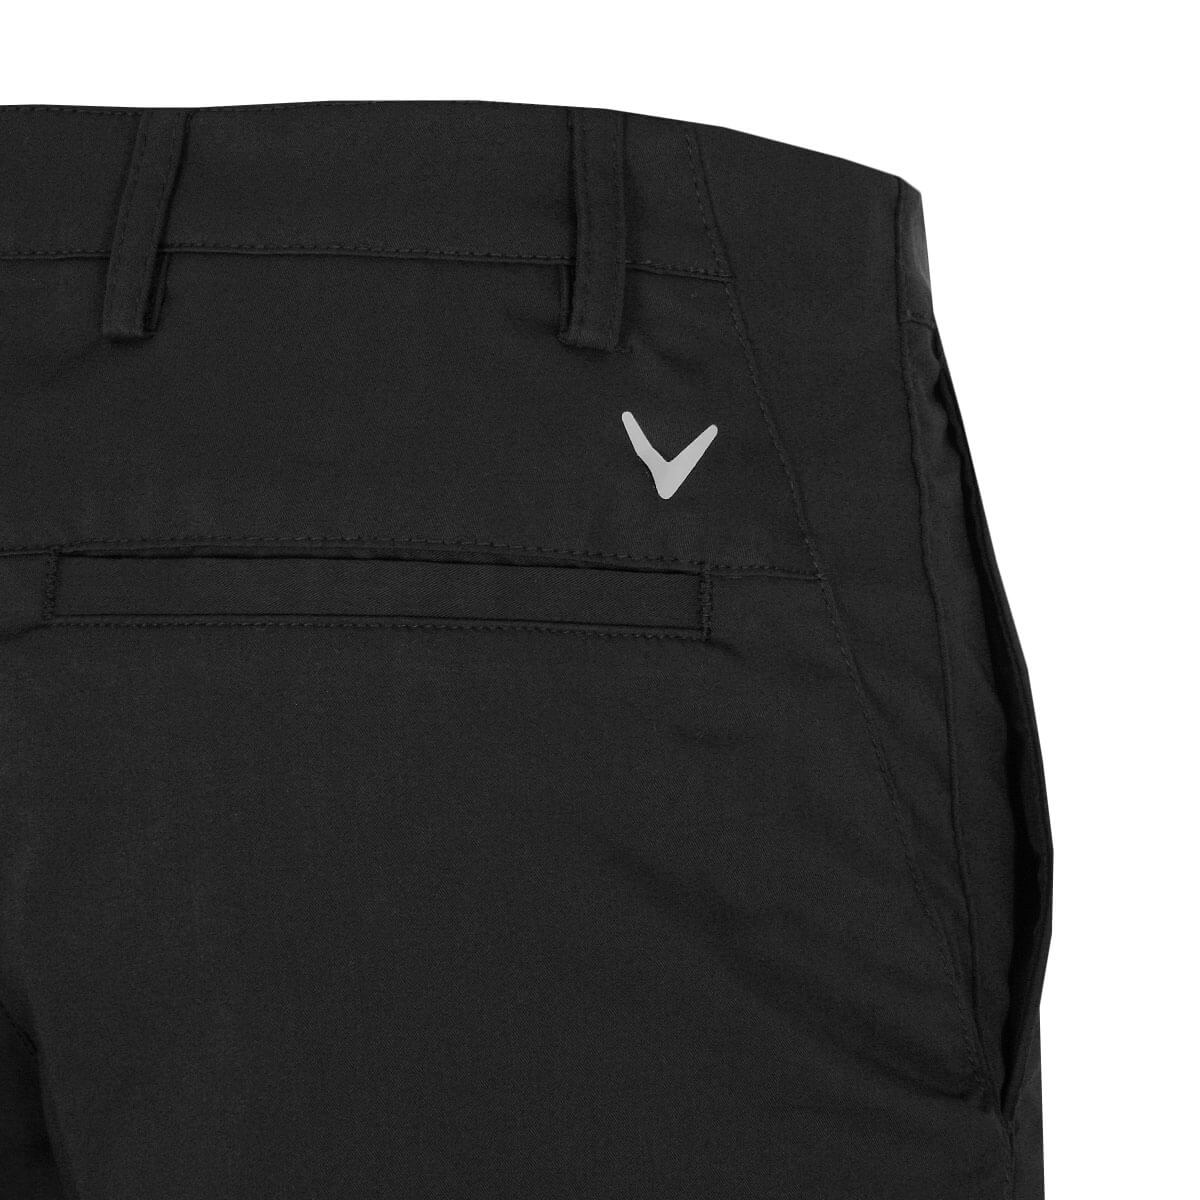 Callaway-Mens-2019-Ergo-Stretch-Golf-Slim-Fit-Tailored-Chevron-Shorts thumbnail 4